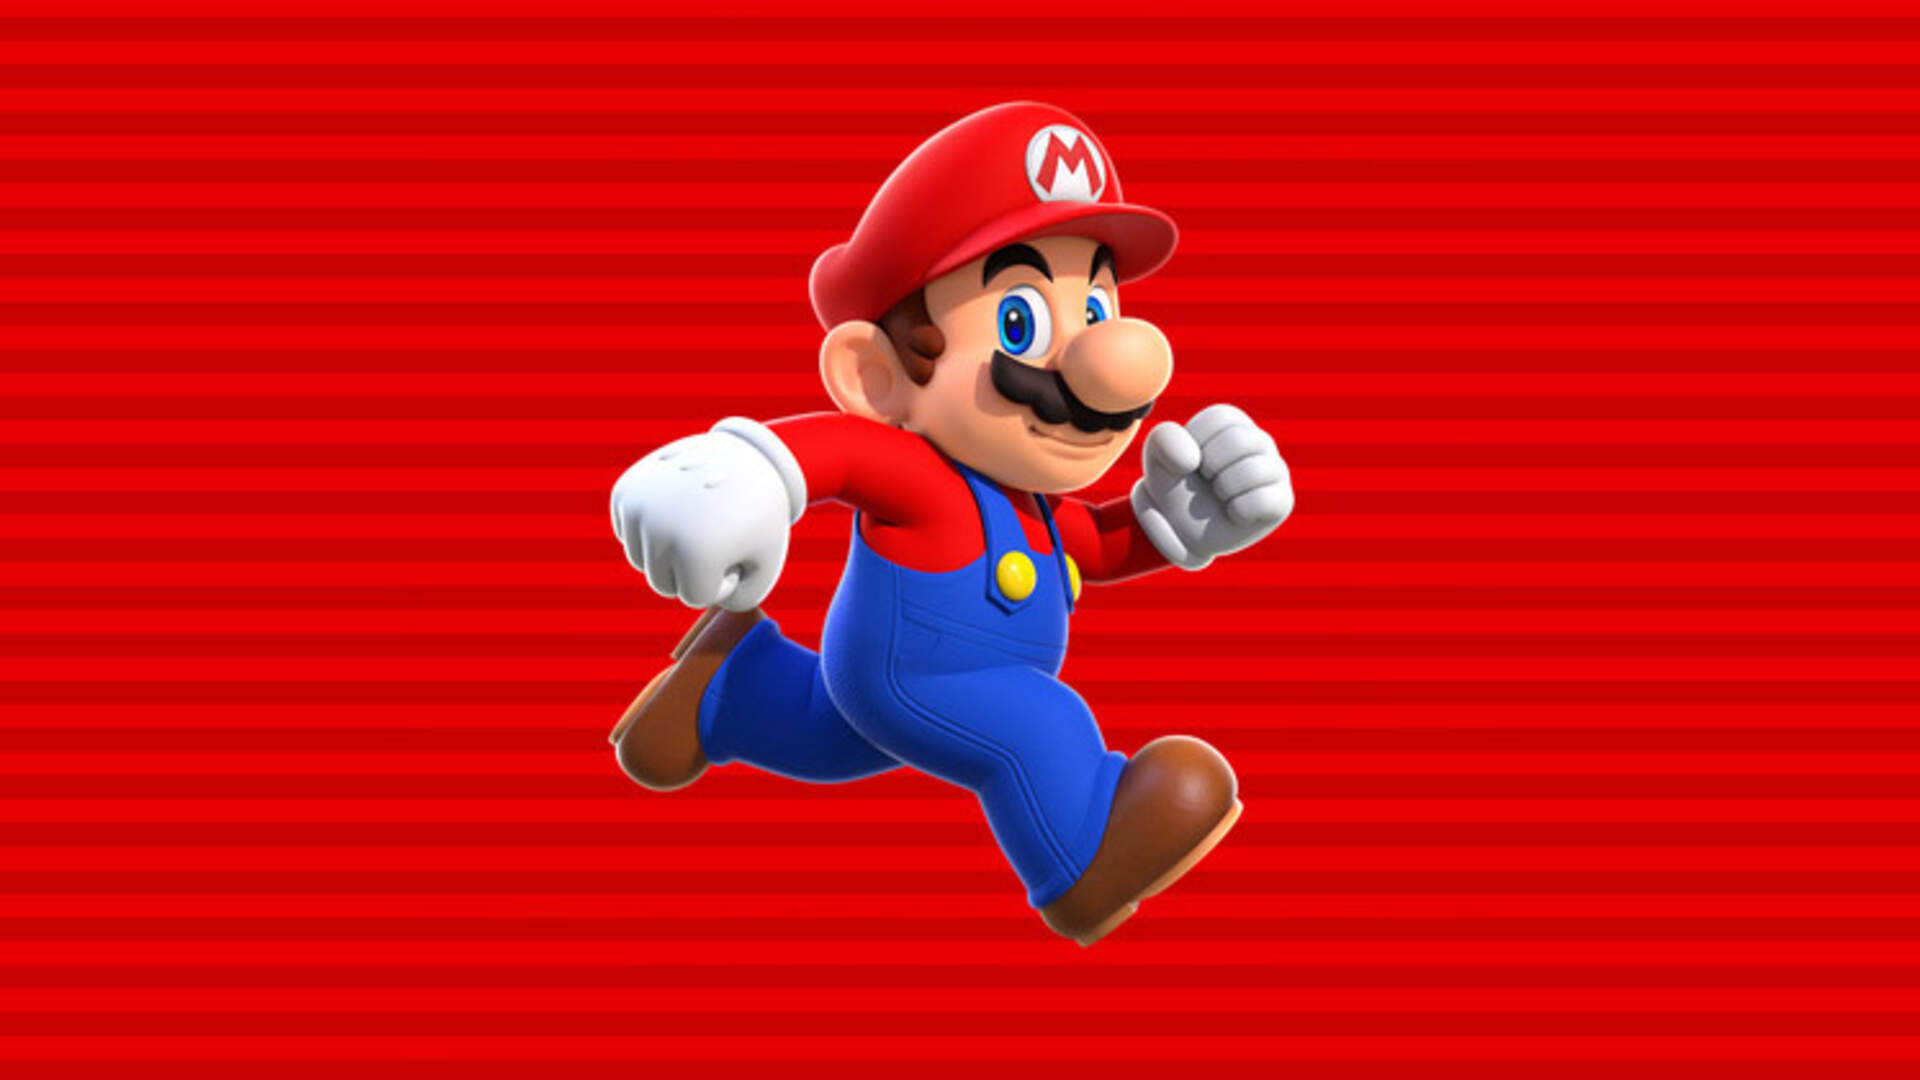 New Nintendo President Wants to Grow Company's Mobile Games Into a 100 Billion Yen Business